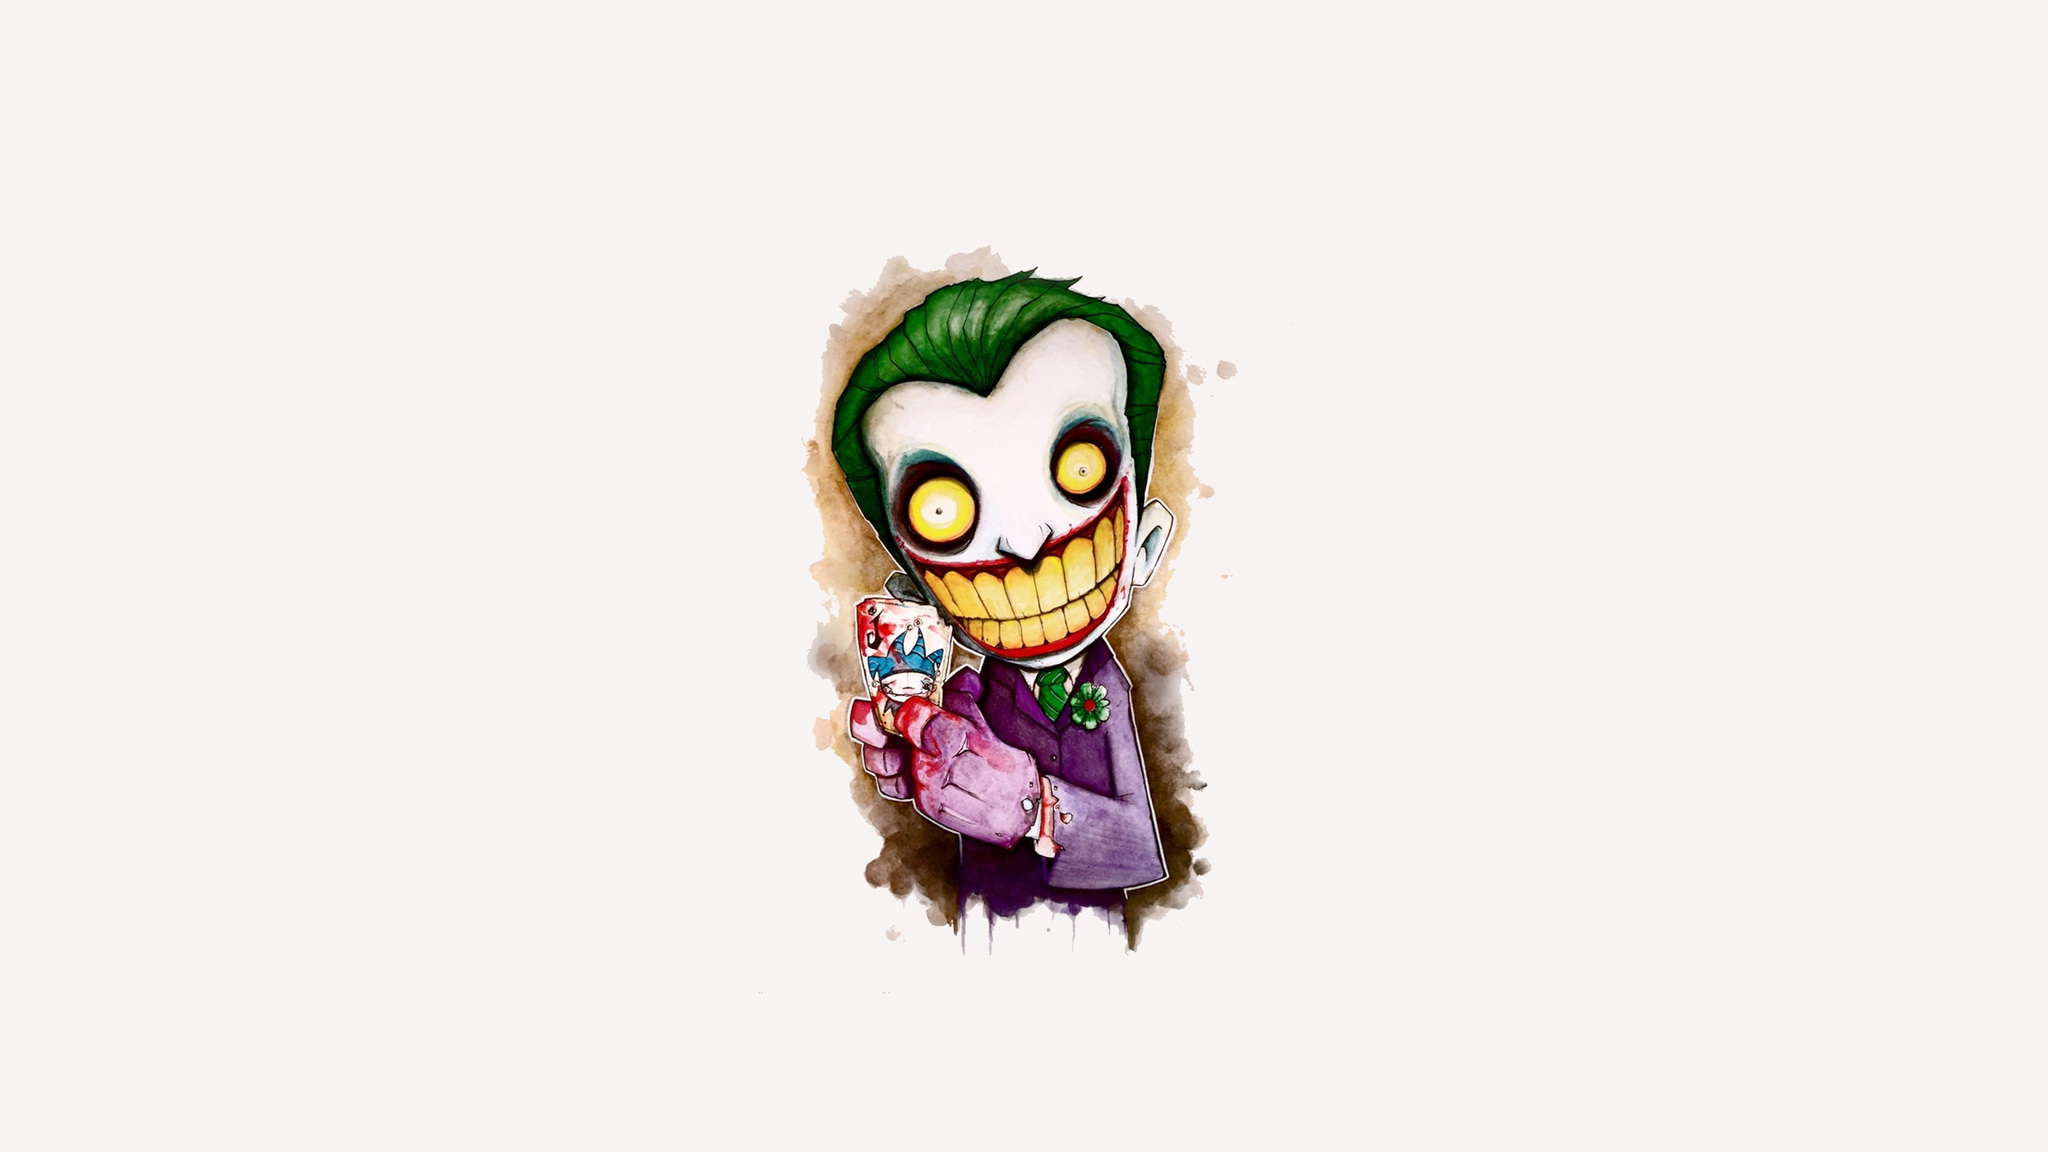 2048x1152 Joker Cartoon 4k Artwork 2048x1152 Resolution Hd 4k